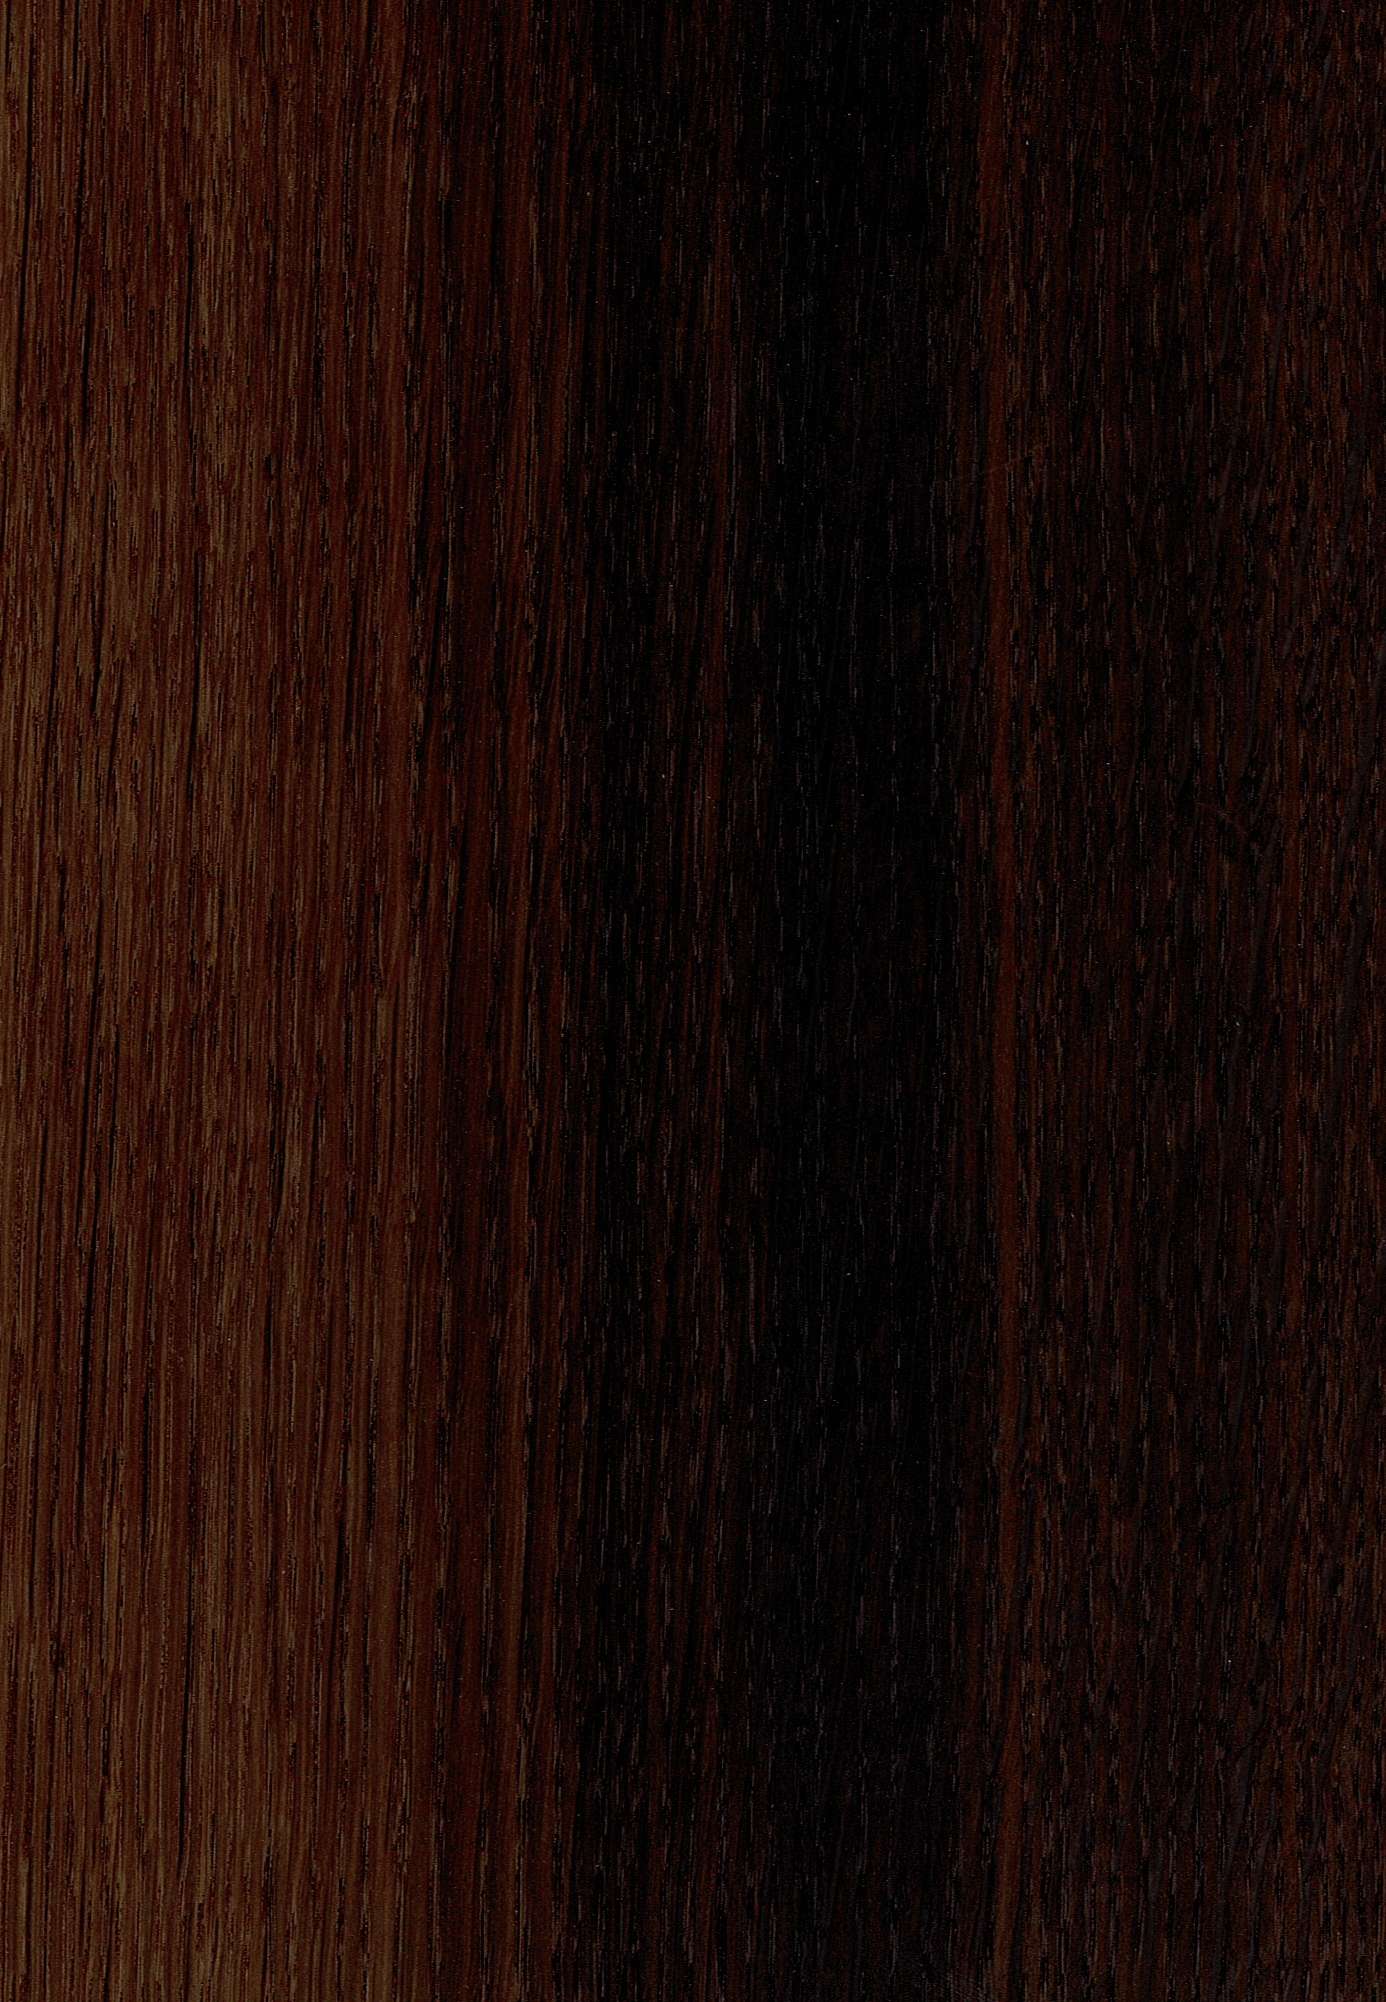 Dark Mahogany Wood Color ~ Räuchereiche wikiwand